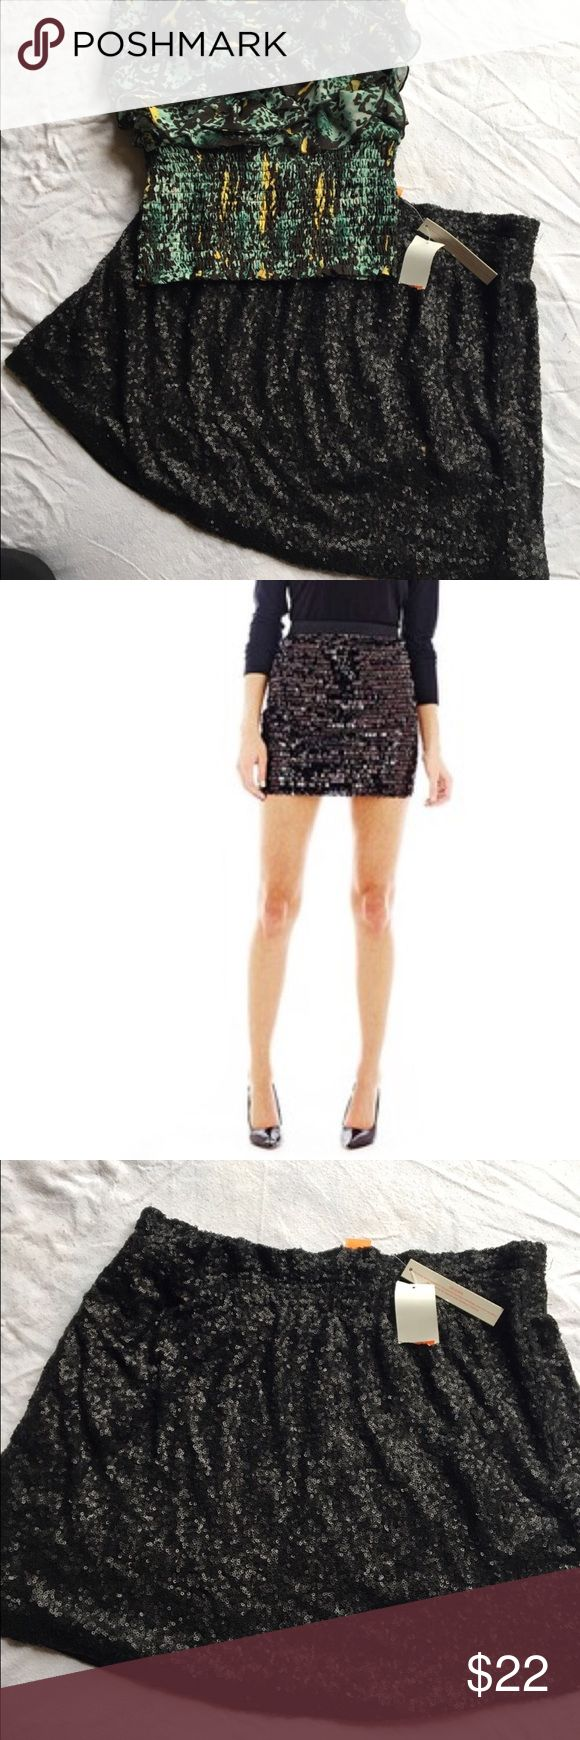 BNWT Joe Fresh Sequin Mini Skirt Girls night out here you come! Beautiful and sassy Sequin mini skirt. Stretch waistband. BNWT but does have a tear in the interior lining (not noticeable and doesn't affect wear at all) Joe Fresh Skirts Mini